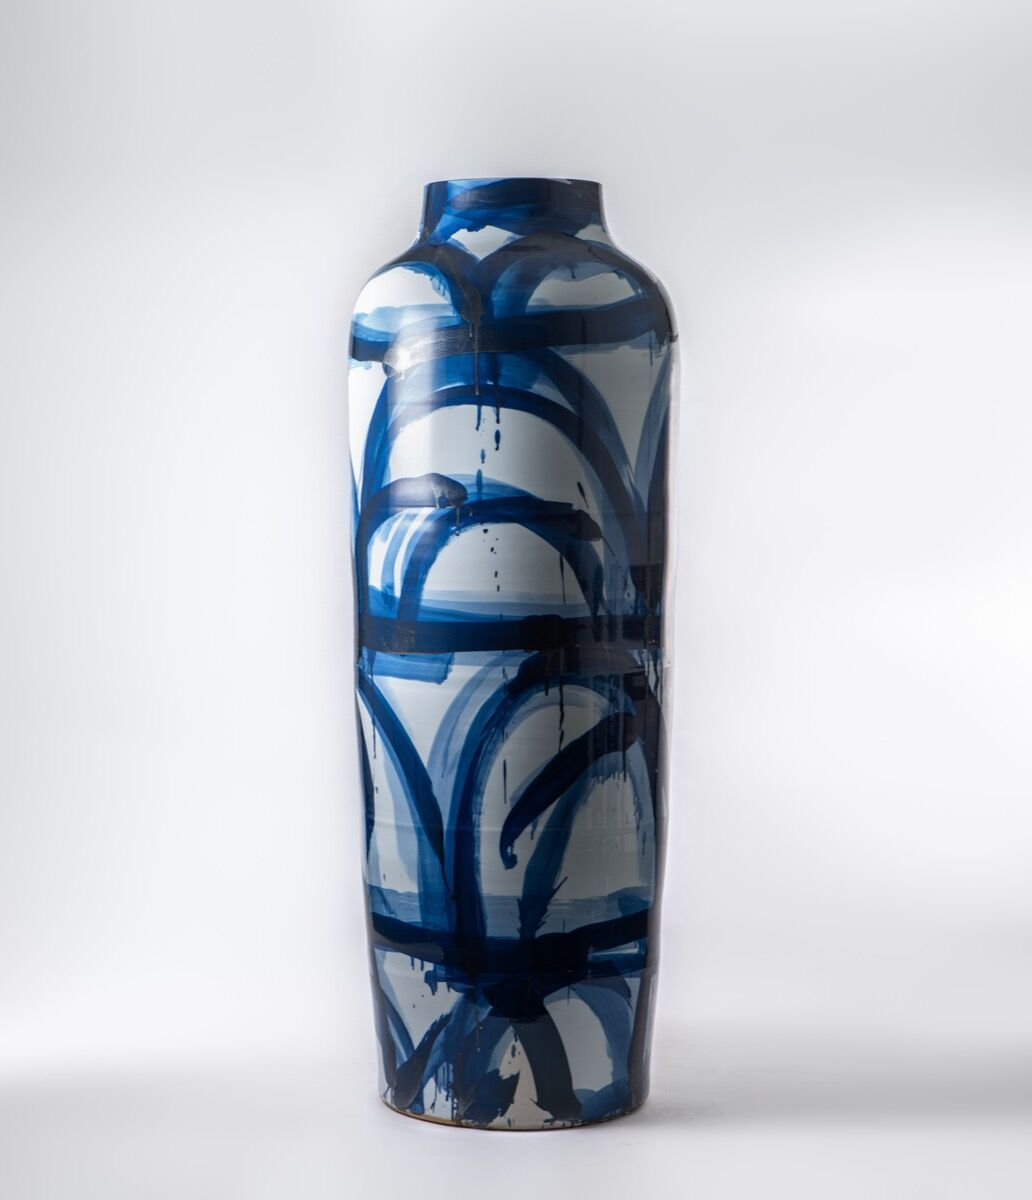 Felicity Aylieff, Blue & white monumental vase Landscape II, 2014, on view at Adrian Sassoon at TEFAF Maastricht, 2017. Courtesy of TEFAF Maastricht.